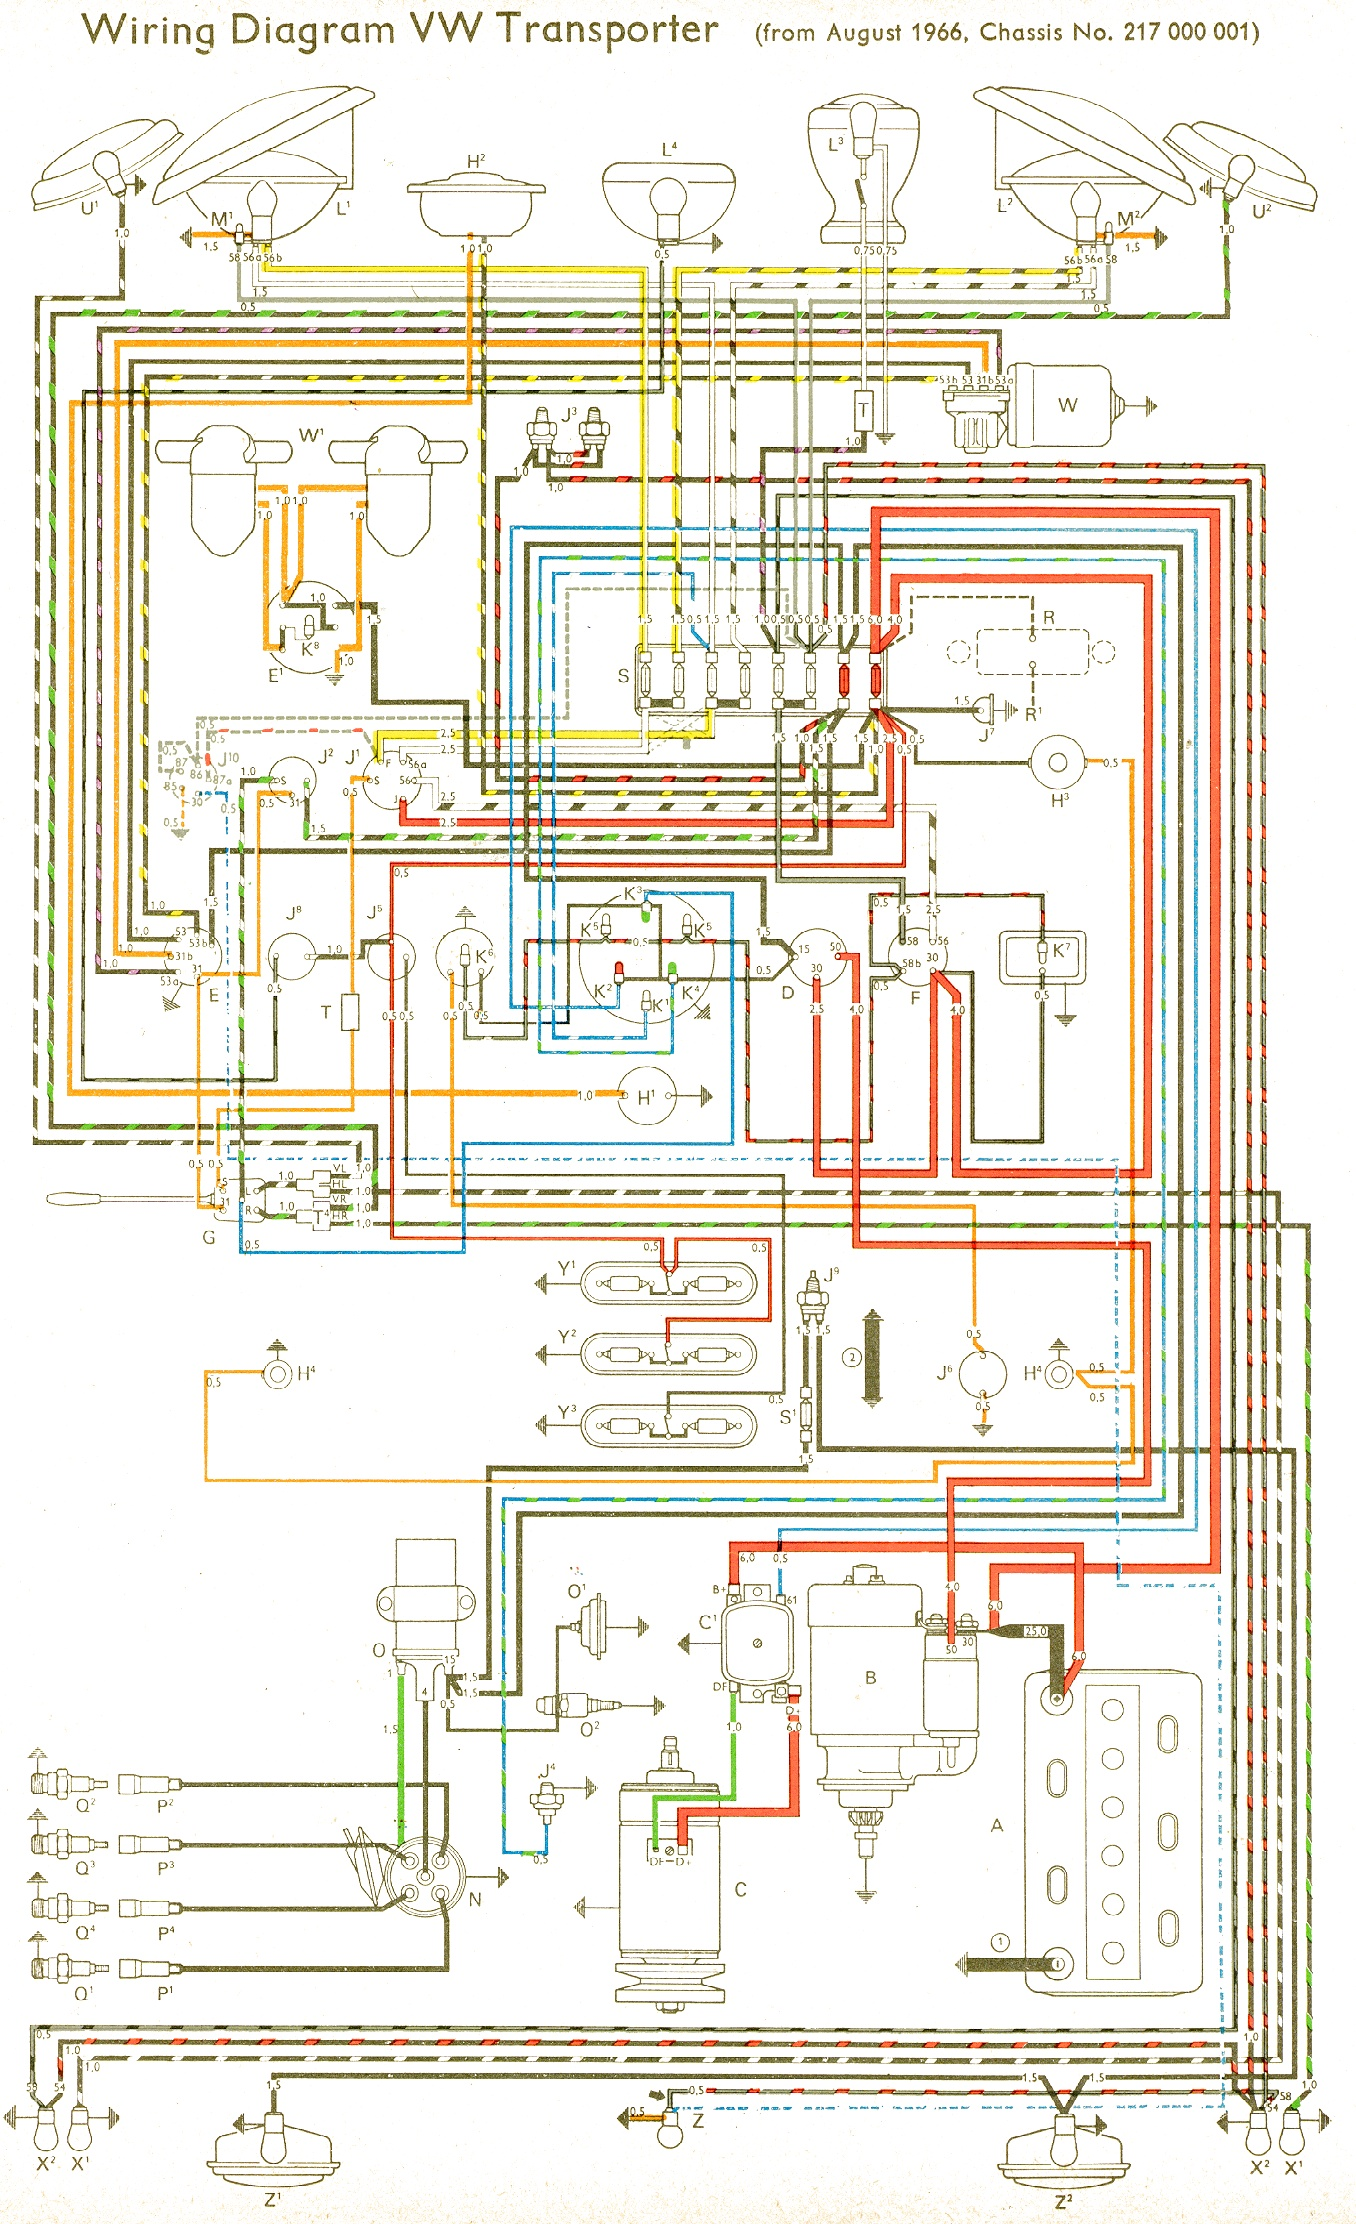 bus 66 vw bus wiring diagram 1965 vw bus wiring diagram \u2022 wiring diagrams Air 1964 Bel at alyssarenee.co